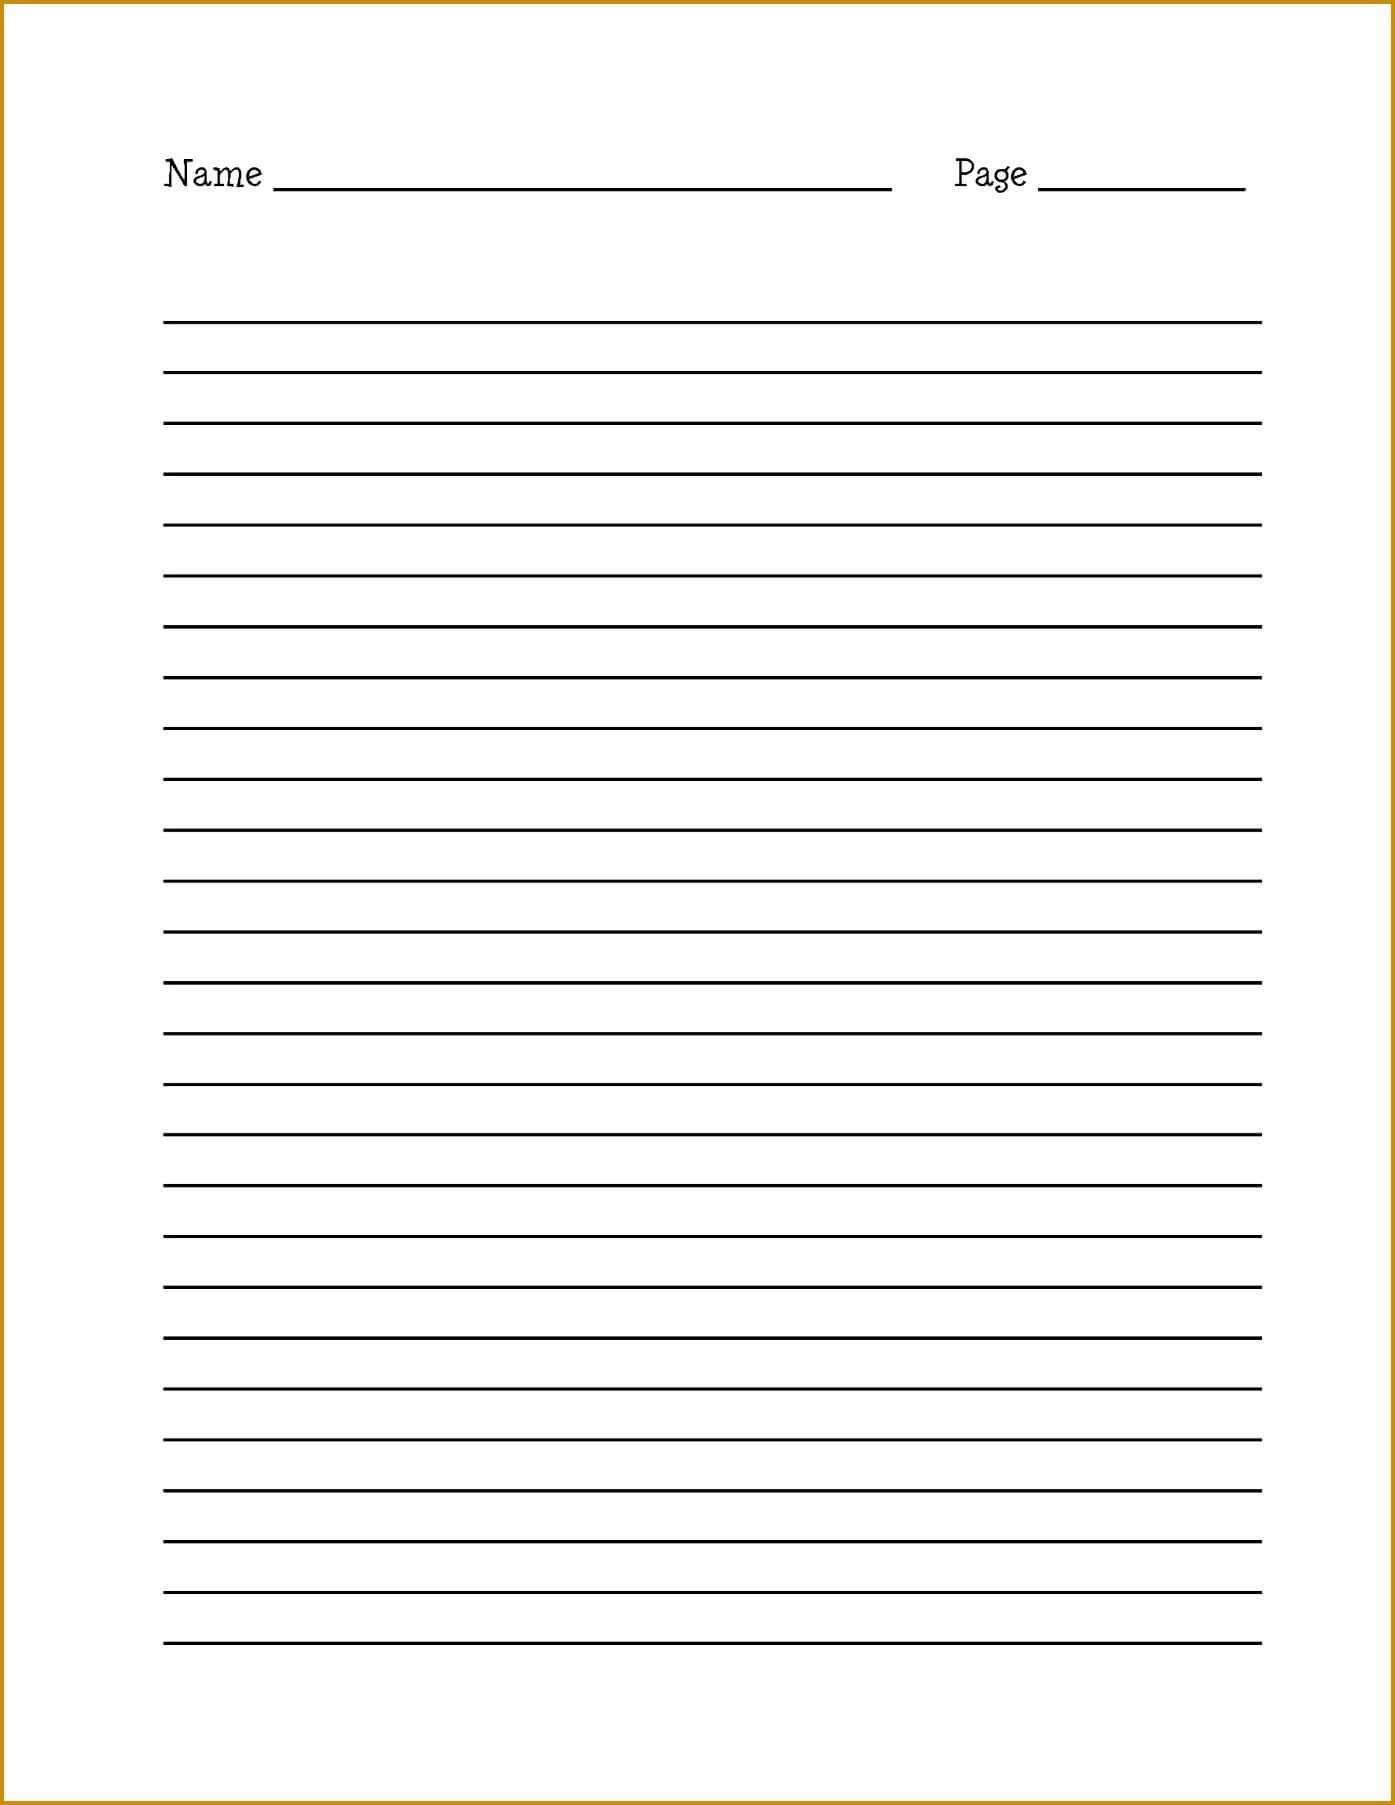 11-12 Template For Ruled Paper | Lasweetvida with College Ruled Lined Paper Template Word 2007